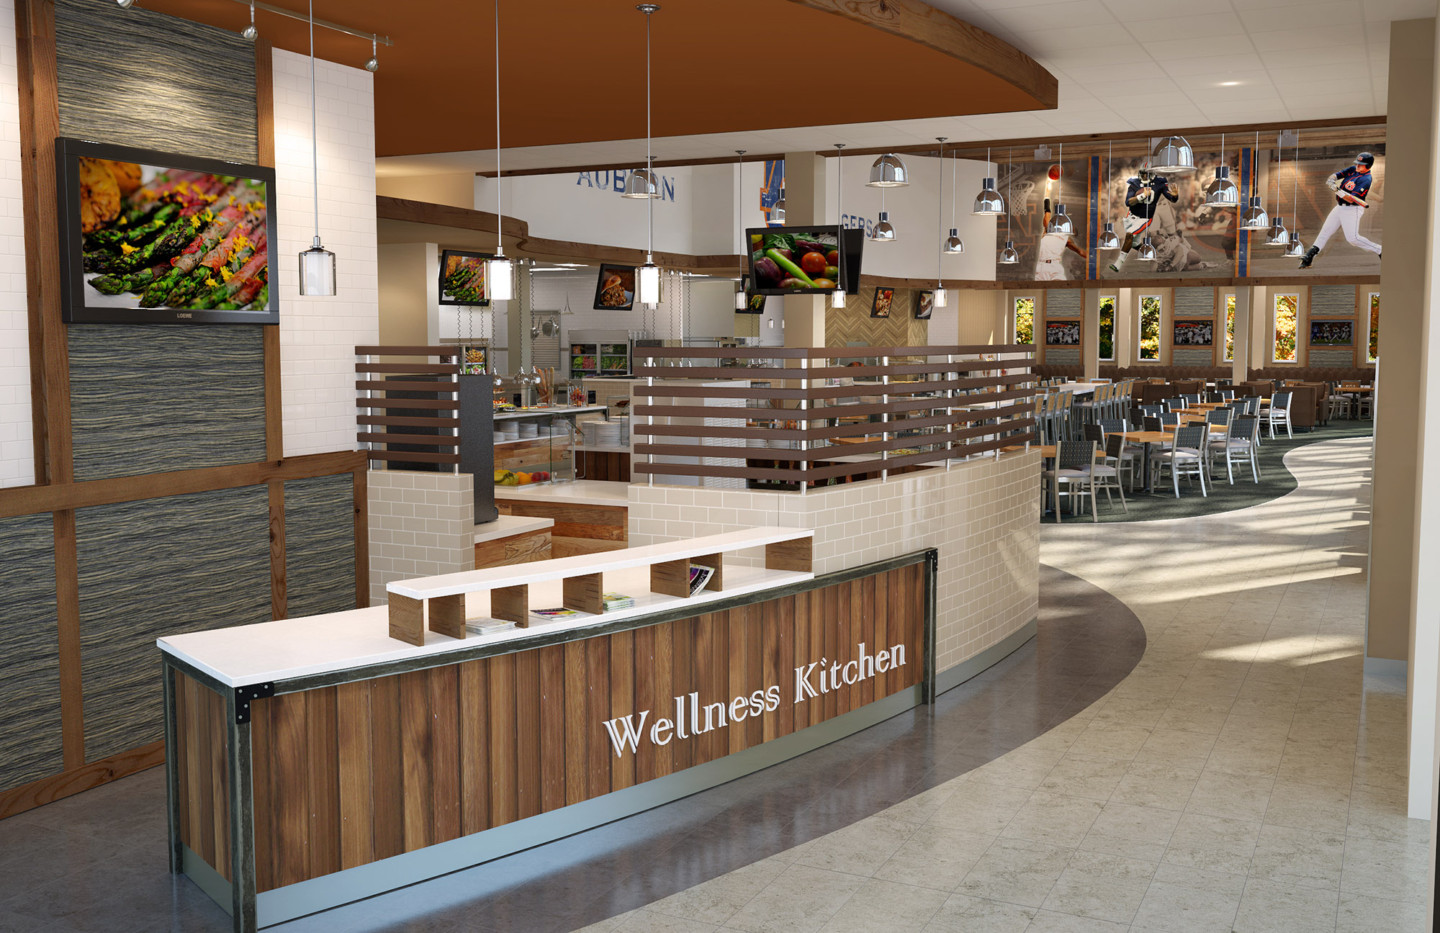 AUBURN WELLNESS KITCHEN ATHLETIC DINING VIEW 04